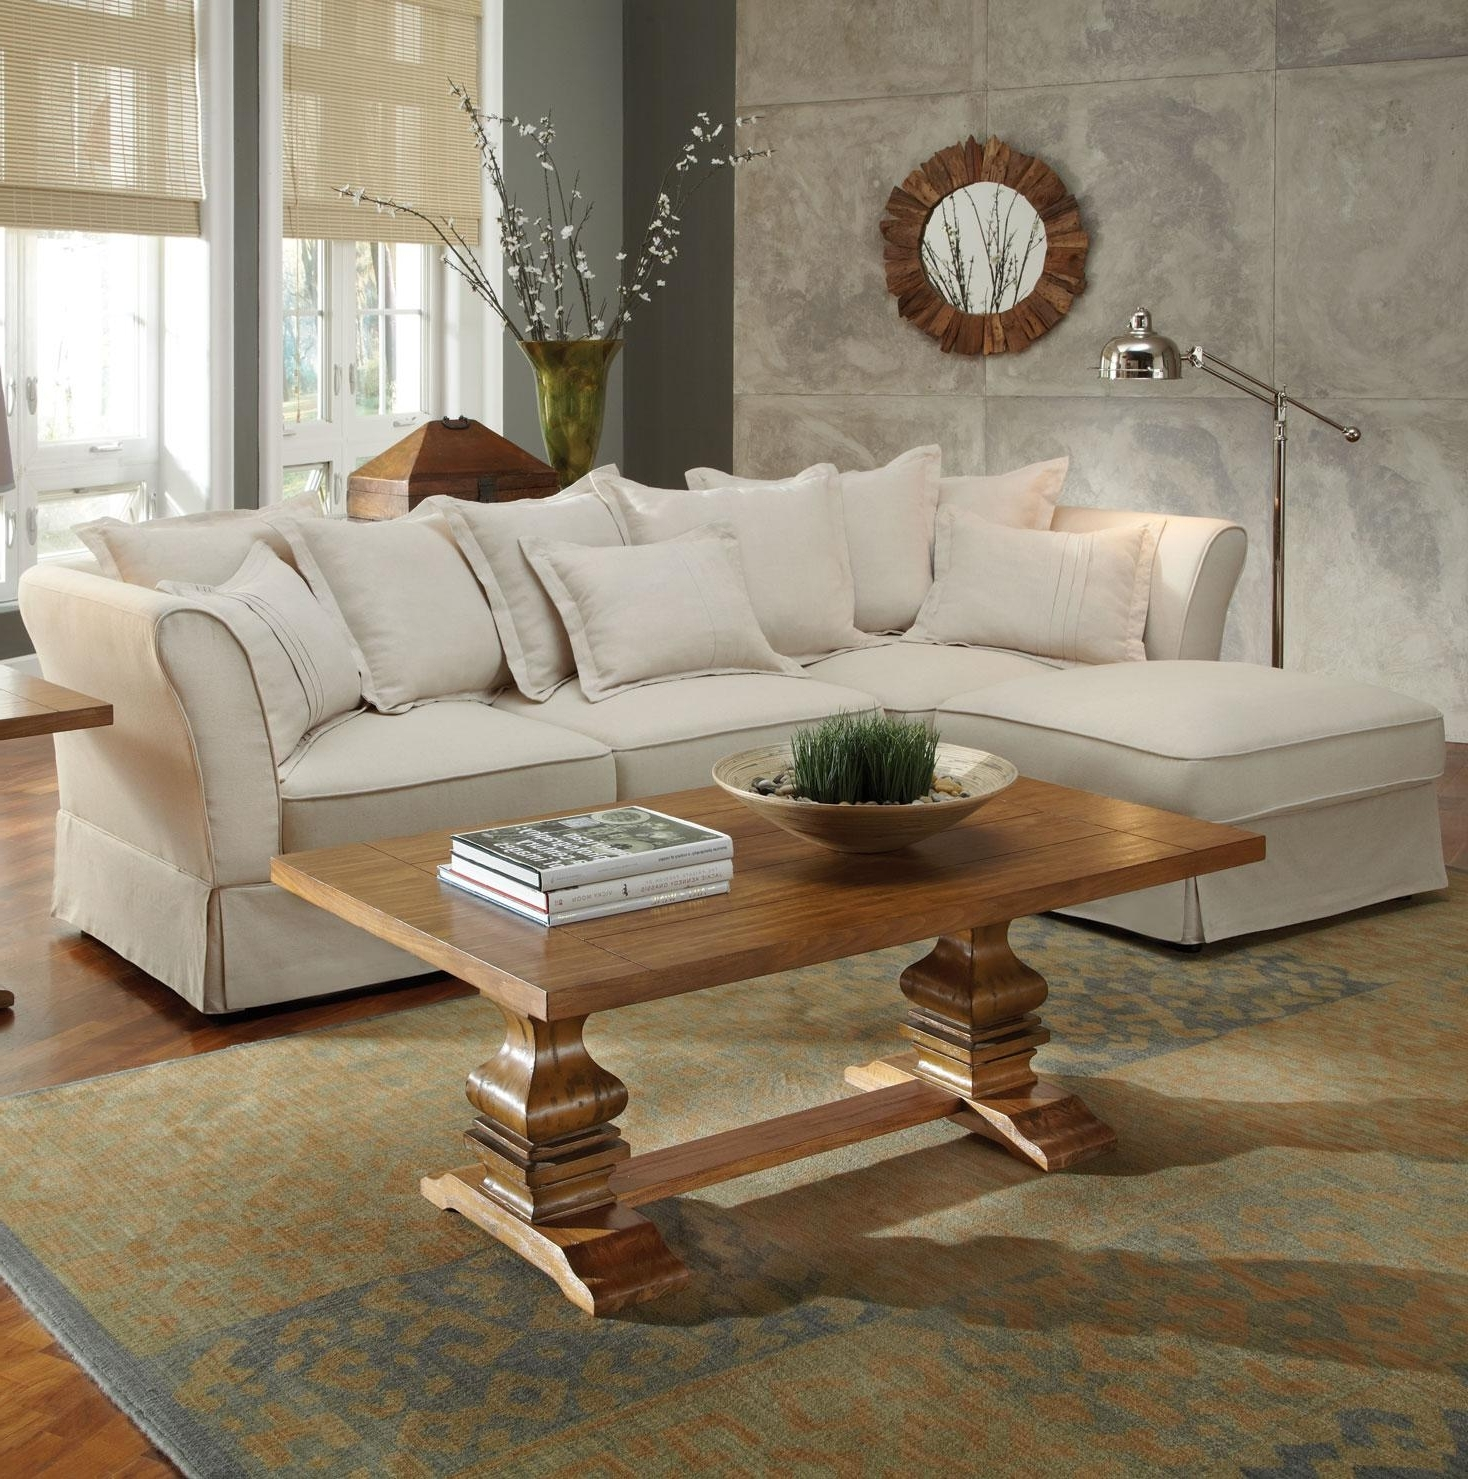 New Orleans Sectional Sofas Throughout Recent Design Furniture Stationary Living Rooms (View 15 of 15)